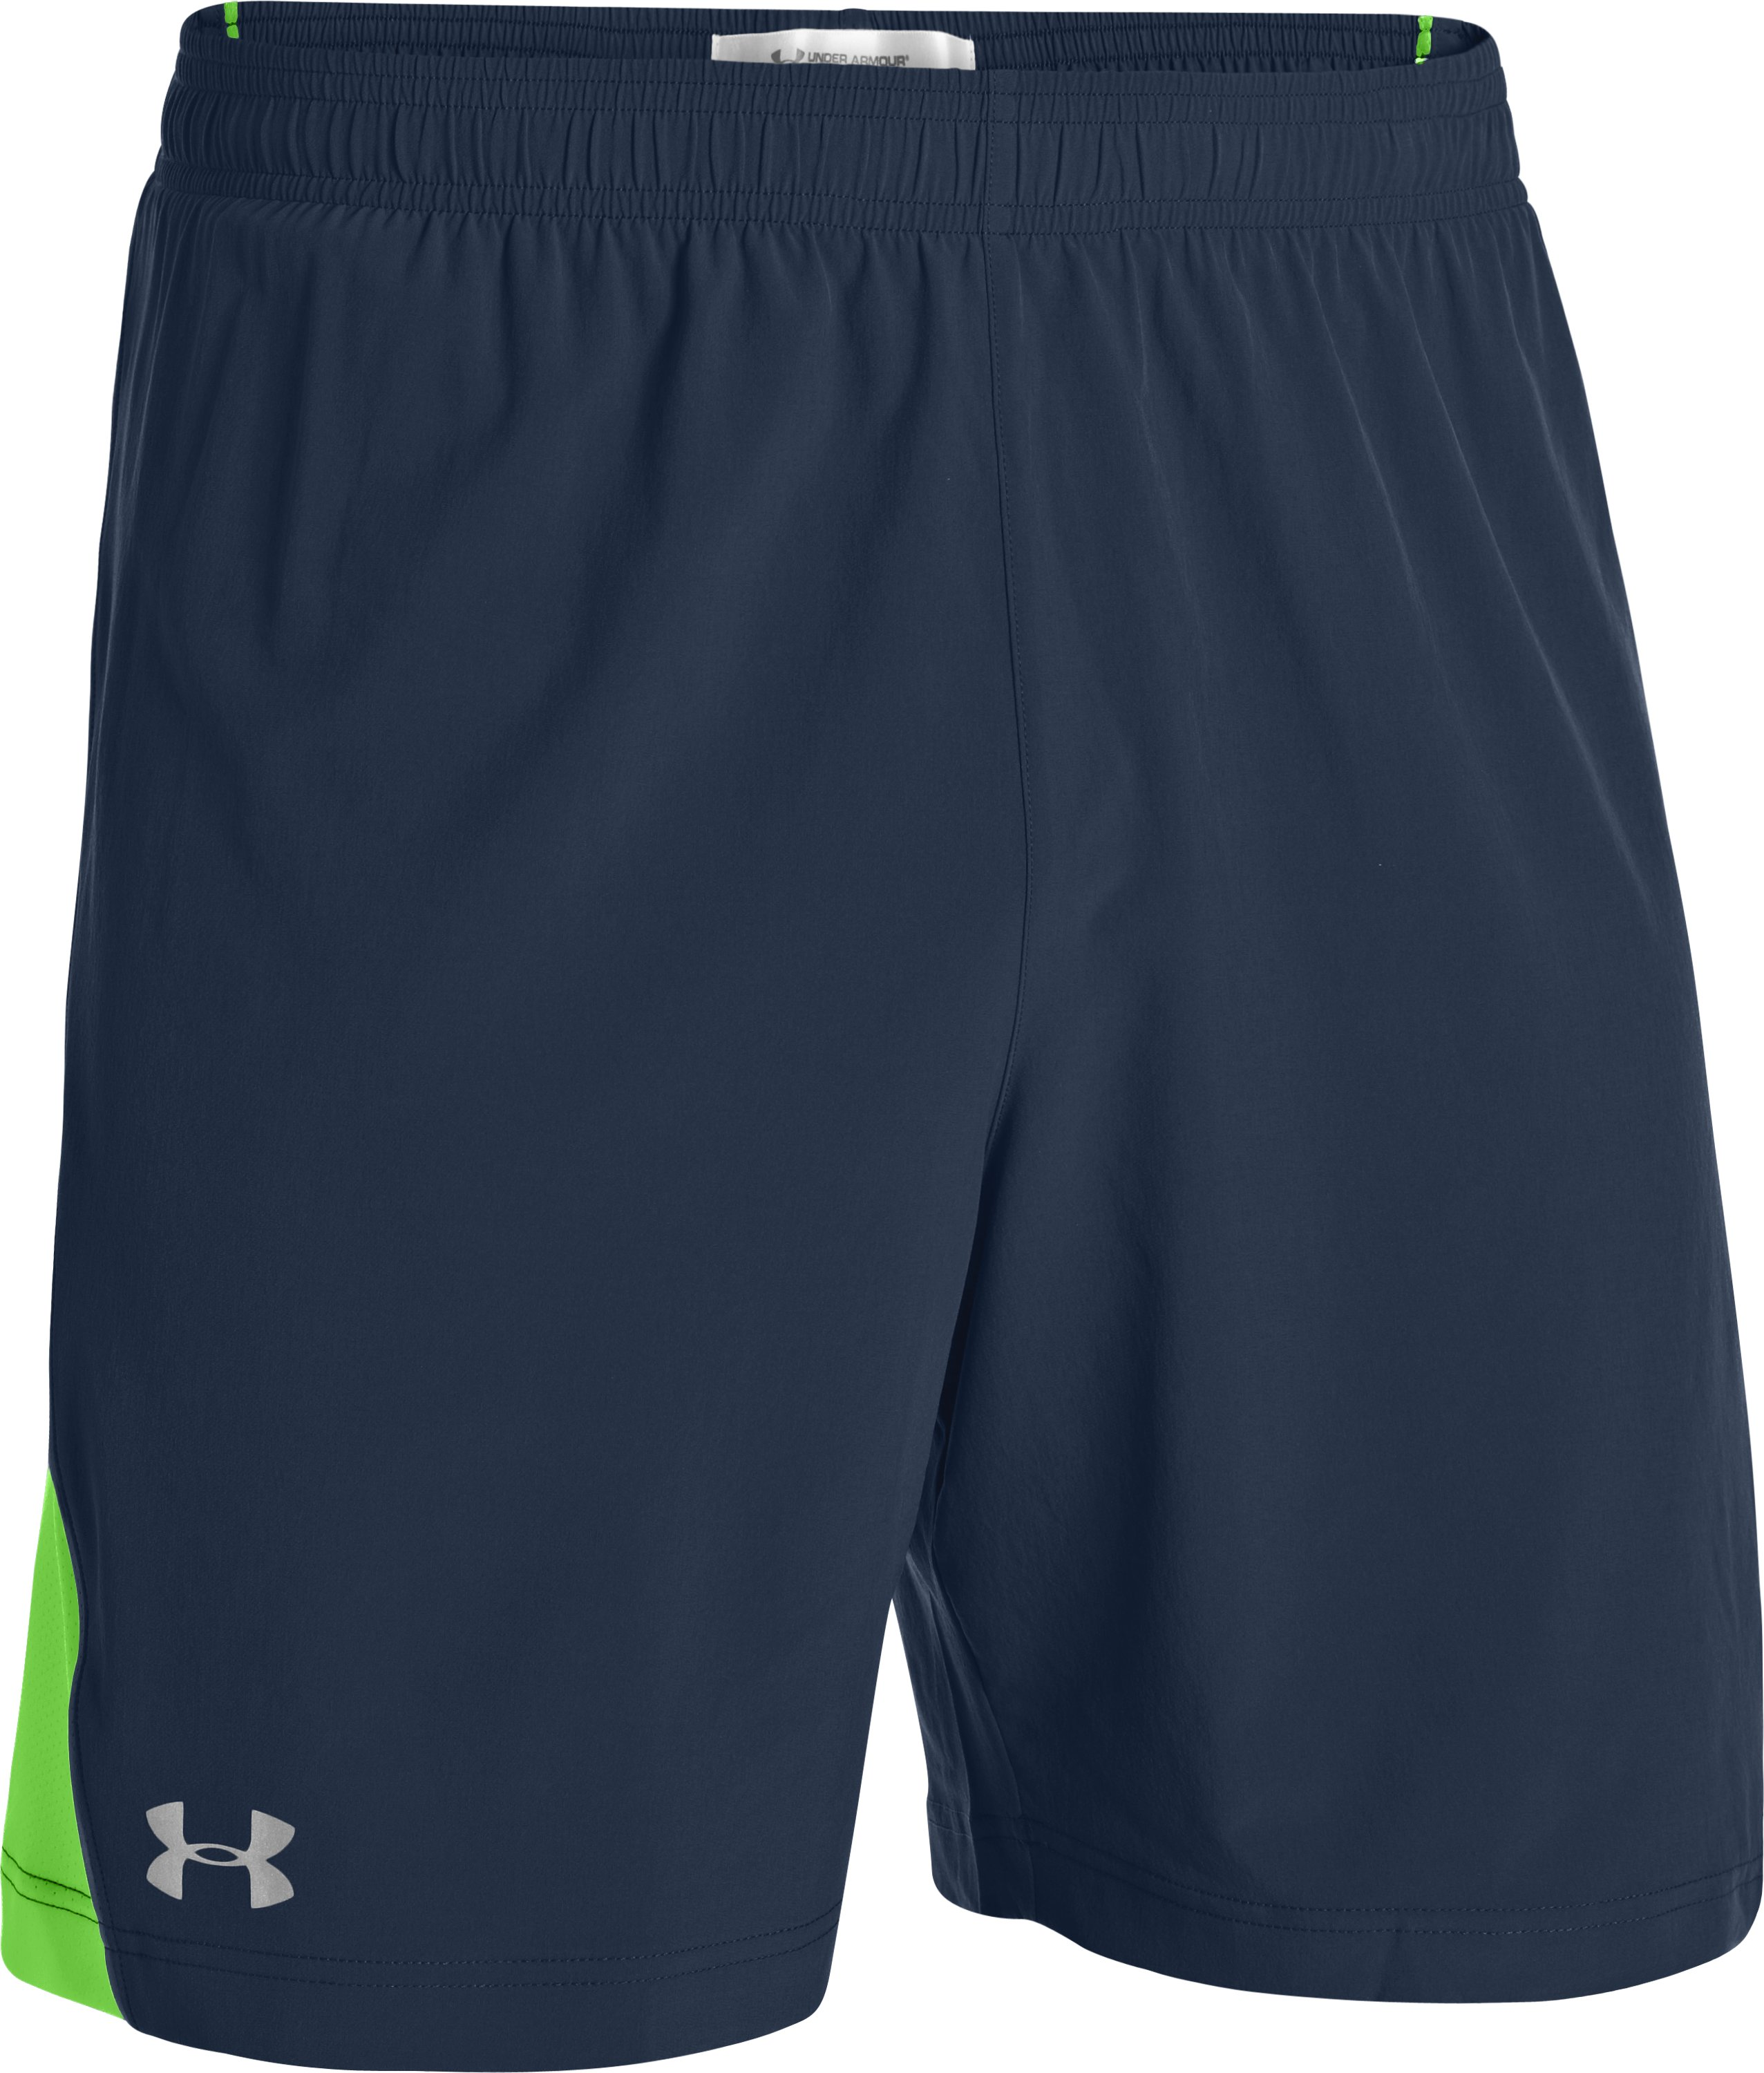 "Men's UA HeatGear® Flyweight Run 7"" Shorts, Academy, undefined"